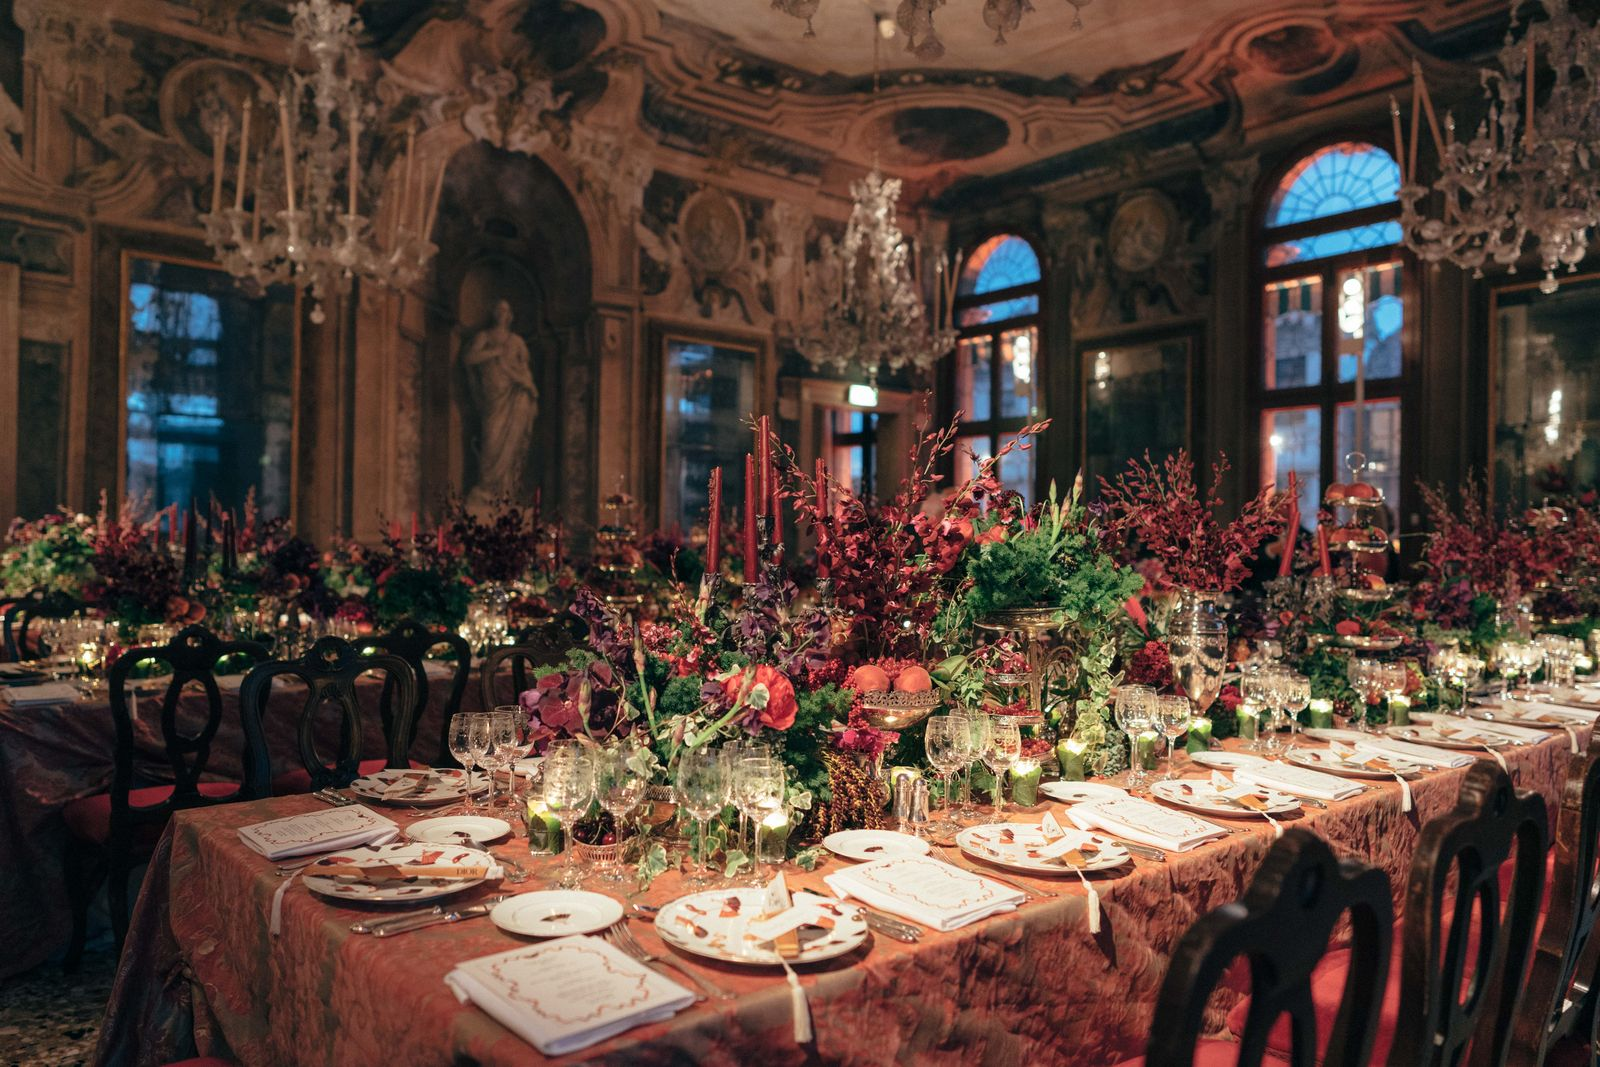 Dior Tiepolo Ball The extravagant furnishings and beautifully laid-out tables were set up by Fortuny, the Venetian fabric maker. (Photo: Pierre Mouton)